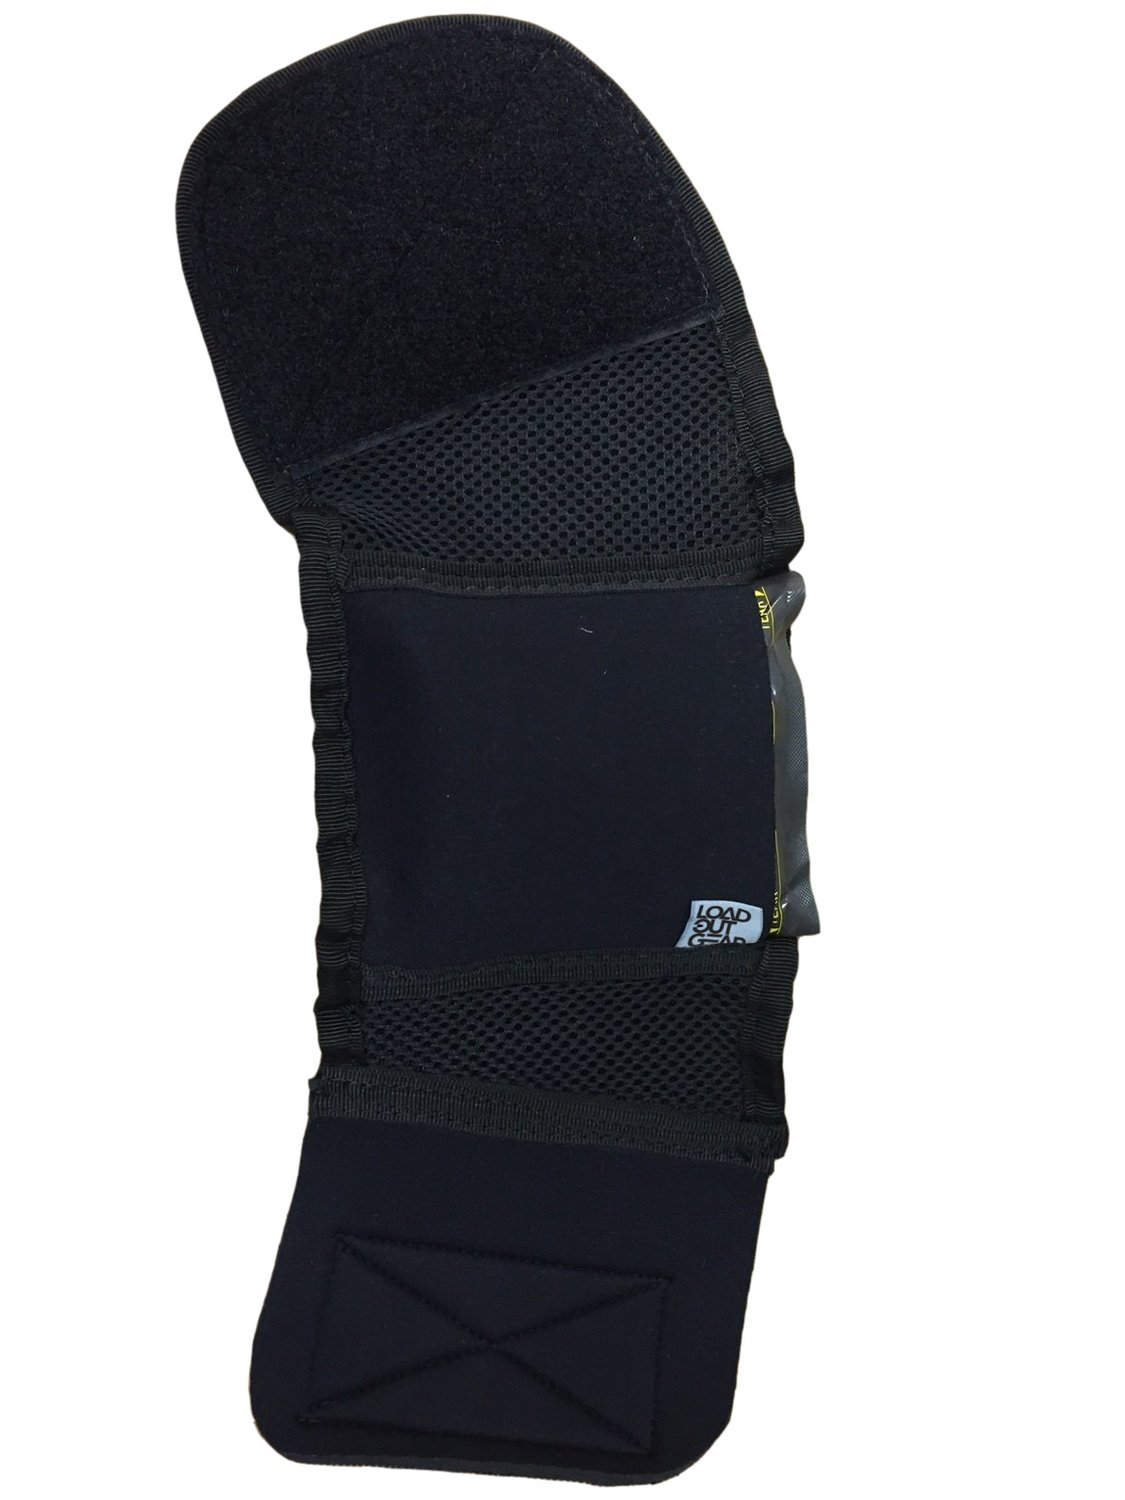 LoadOut Gear Comfort-Air Ankle  Holster for Celox Rapid Gauze